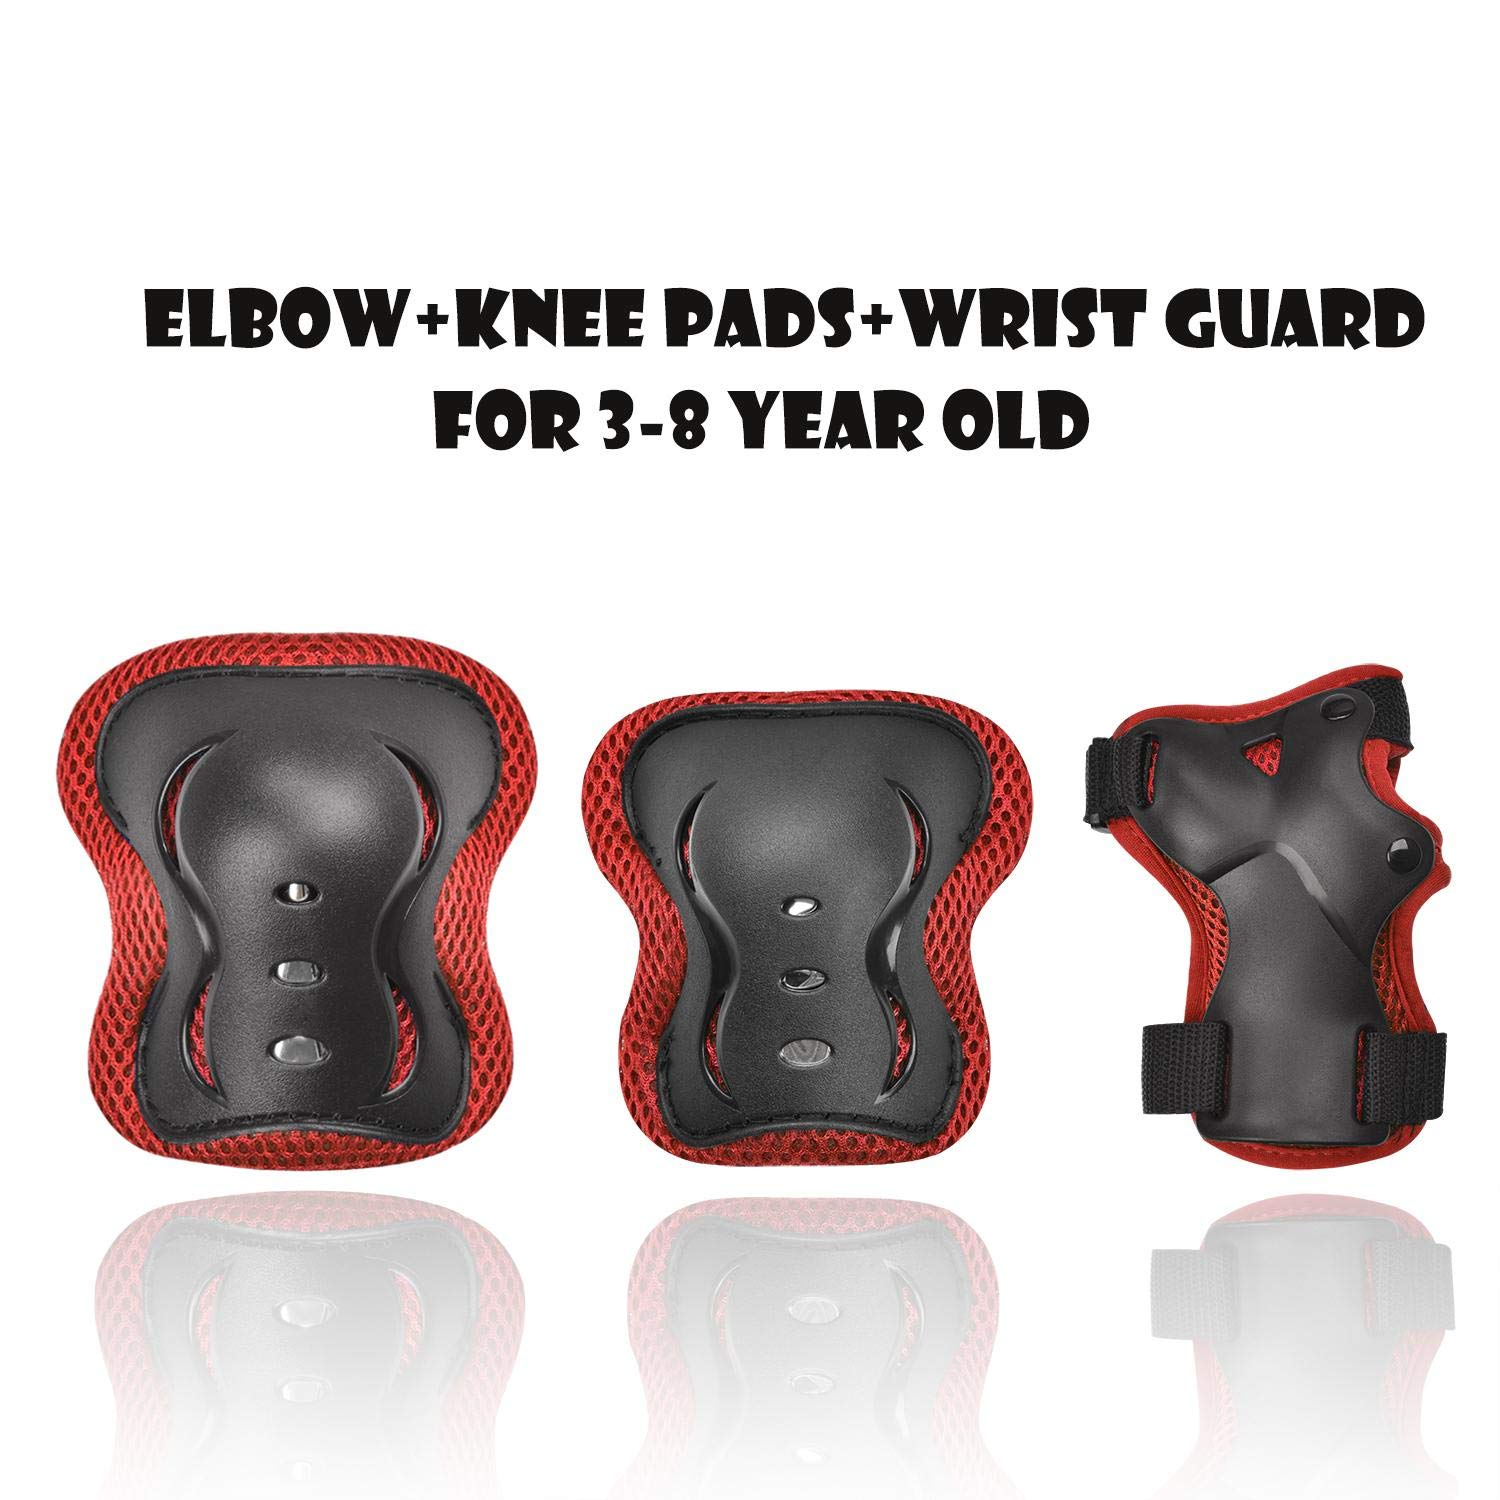 Kids Adjustable Comfortable Knee Pads and Elbow Pads with Wrist Guards Youth Protective Gear Set for Biking, Riding, Cycling and Multi Sports Safety Protection: Scooter, Skateboard, inline skatings by GASACIODS